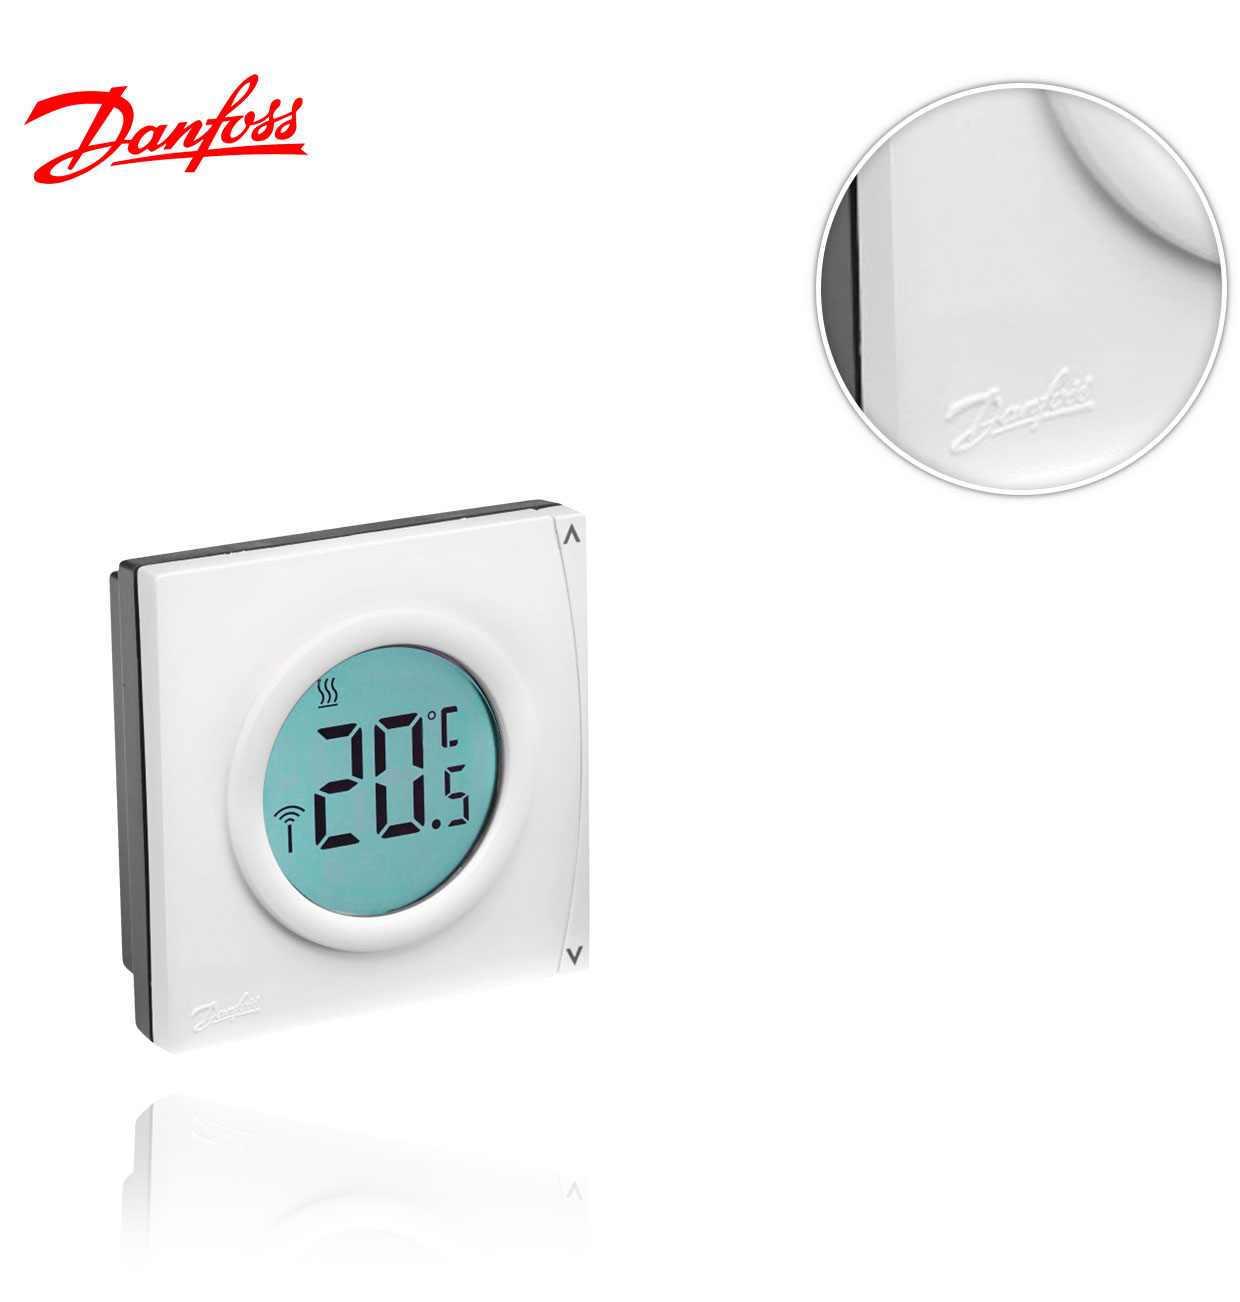 087N6441 RET2000B DANFOSS DIGITAL THERMOSTAT